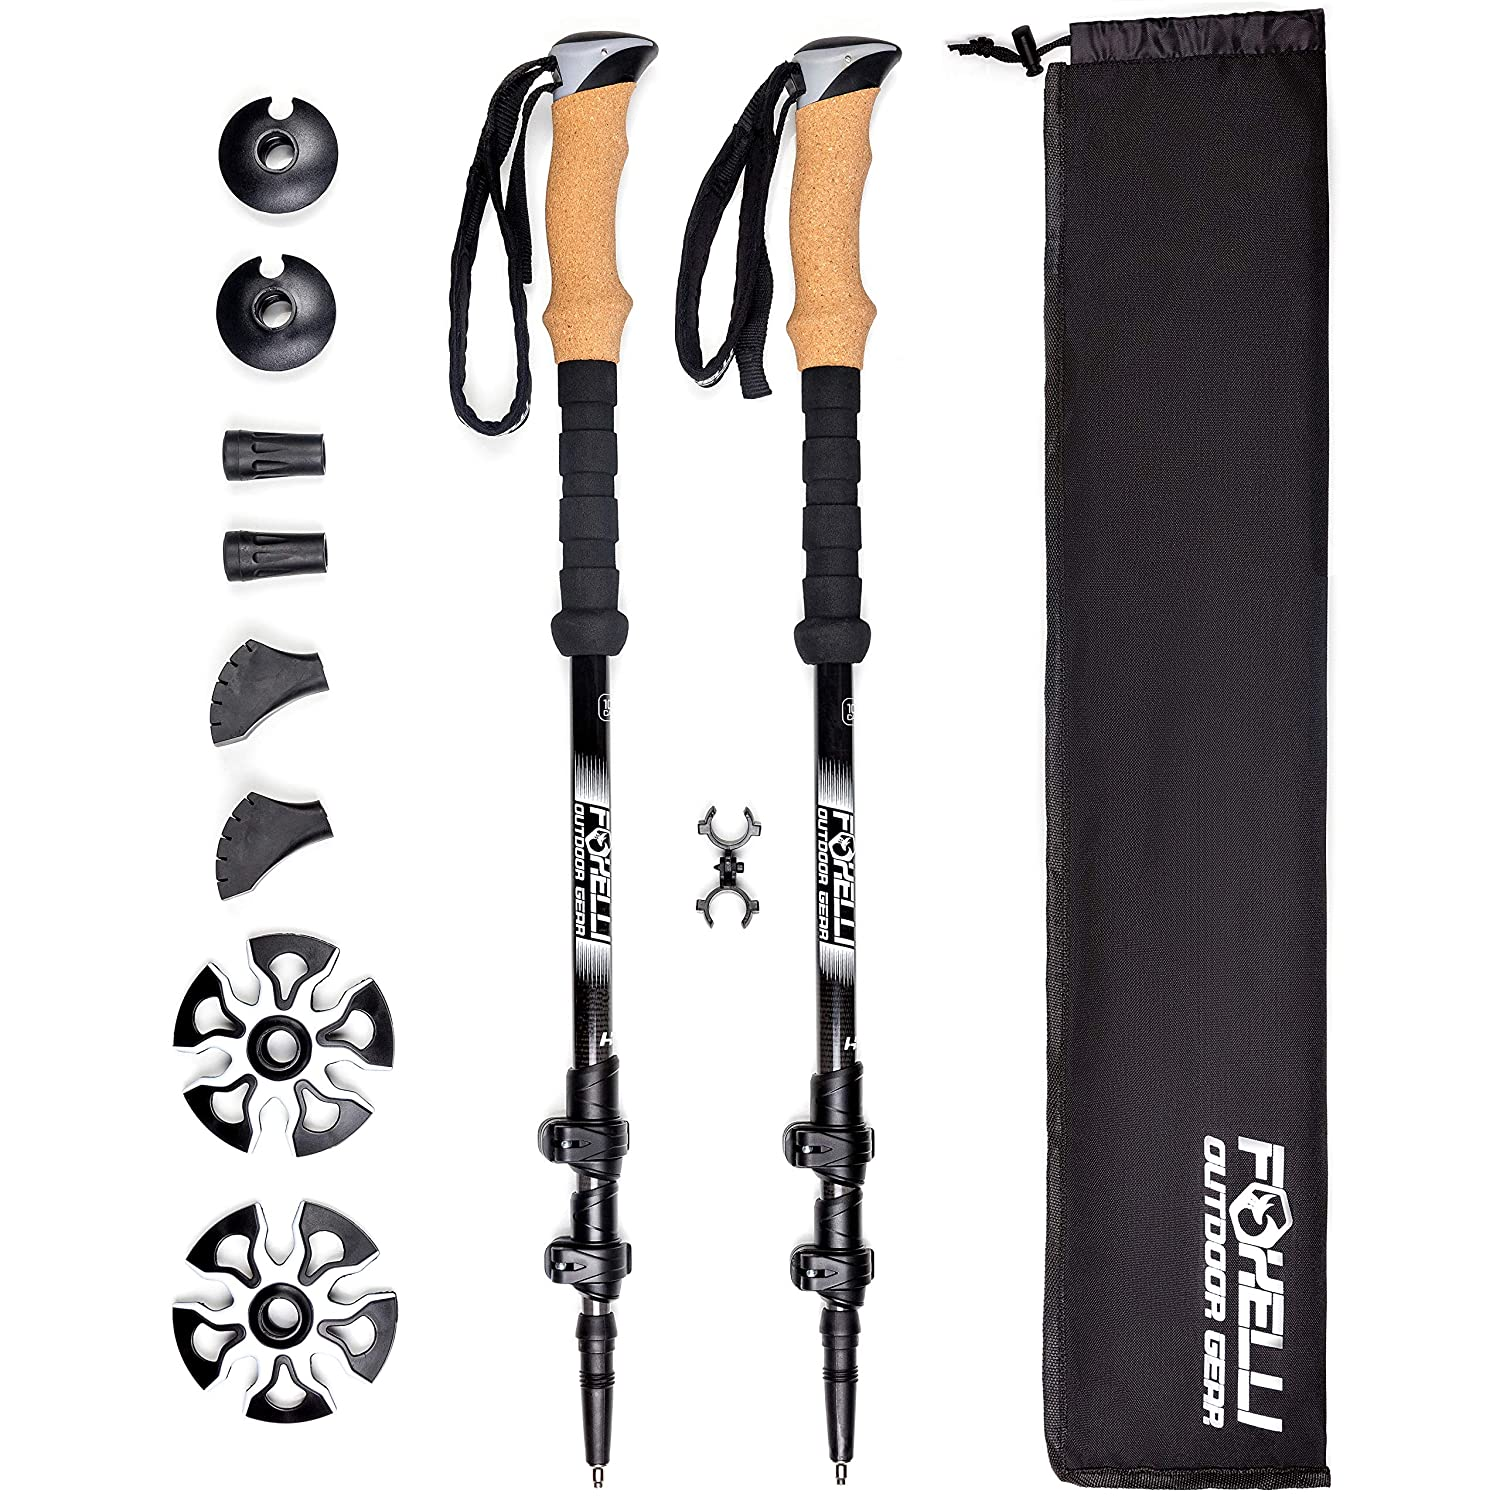 Foxelli Carbon Fiber Trekking Poles Collapsible, Lightweight, Shock-Absorbent, Hiking, Walking Running Sticks with Natural Cork Grips, Quick Locks, 4 Season All Terrain Accessories and Carry Bag